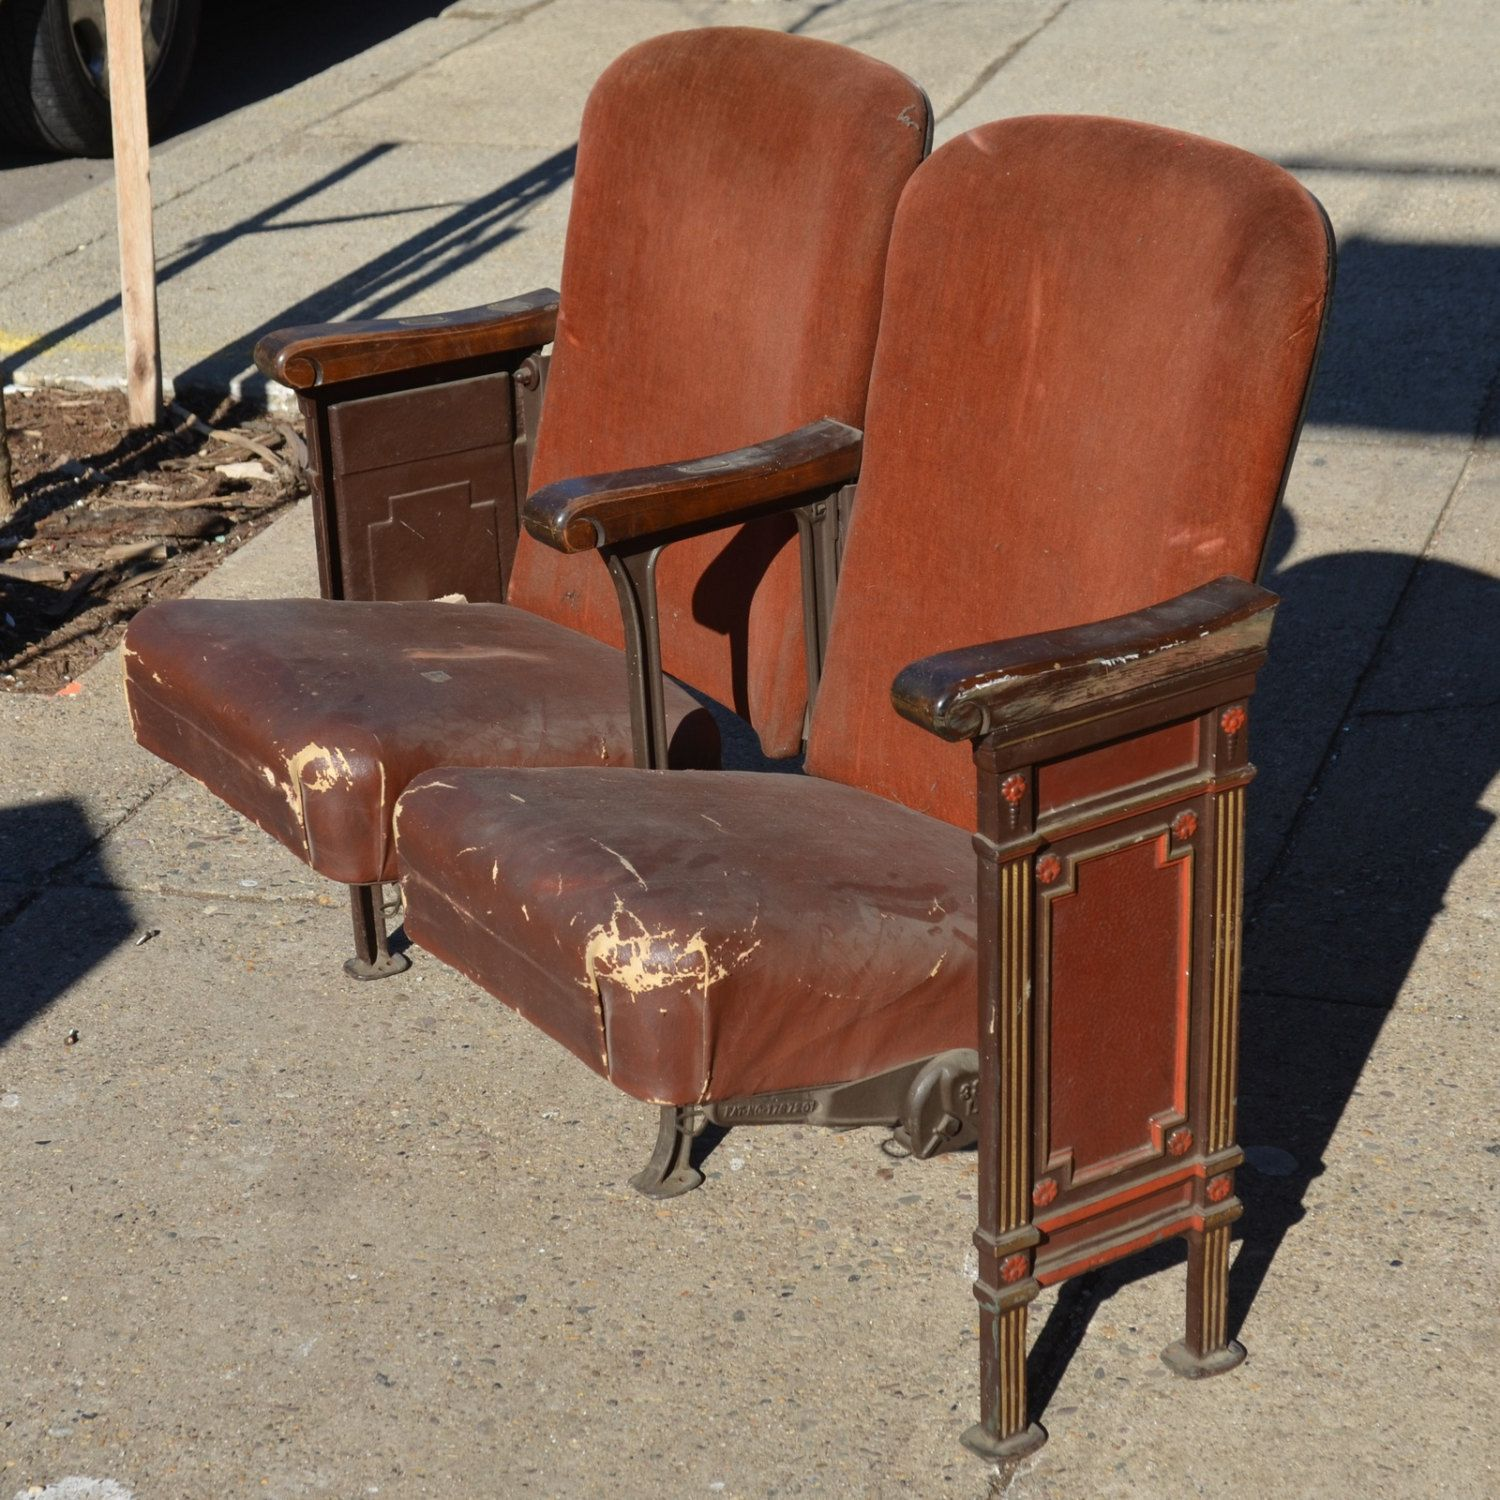 I always loved the idea of vintage theater seats for home seating